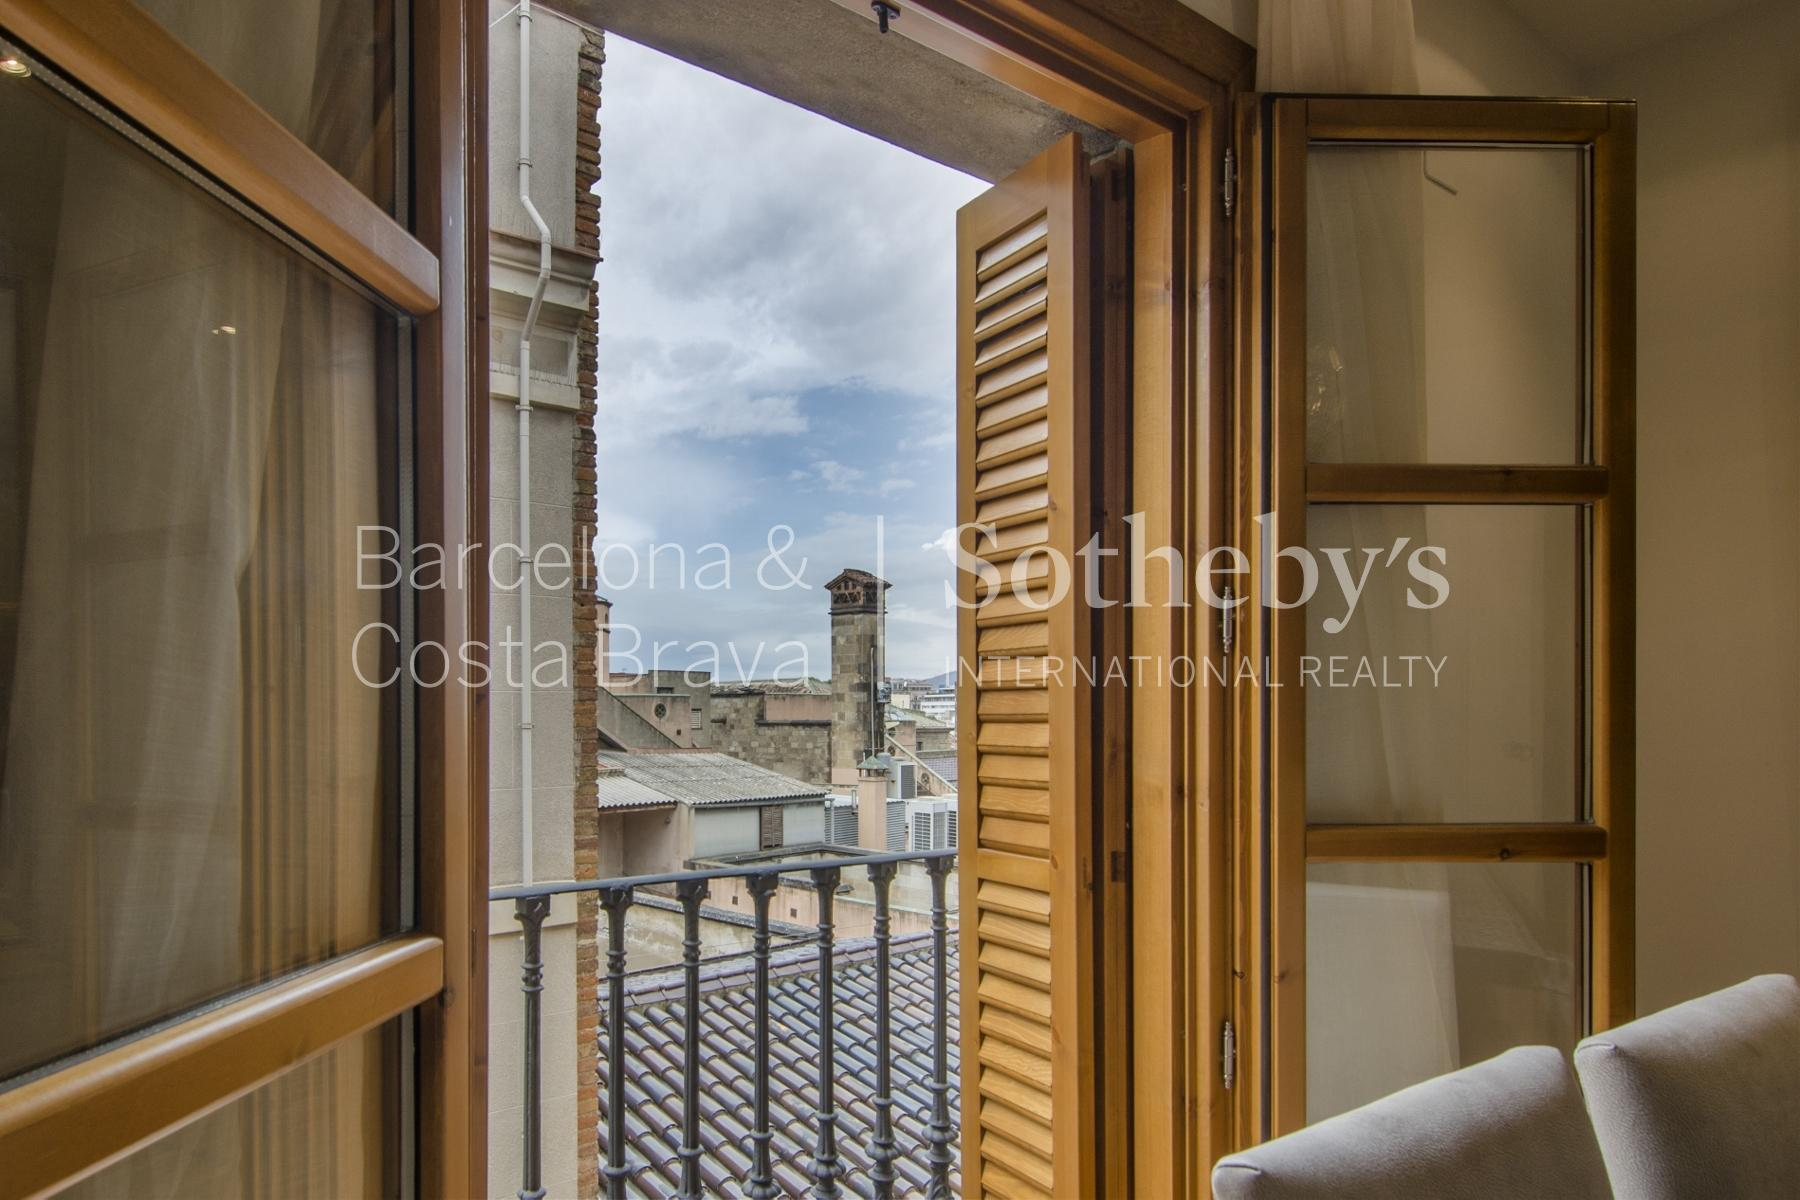 Apartment for Sale at New Promotion of Magnificent Residences Next to the Cathedral Old Town Ciutat Vella, Barcelona City, Barcelona 08002 Spain